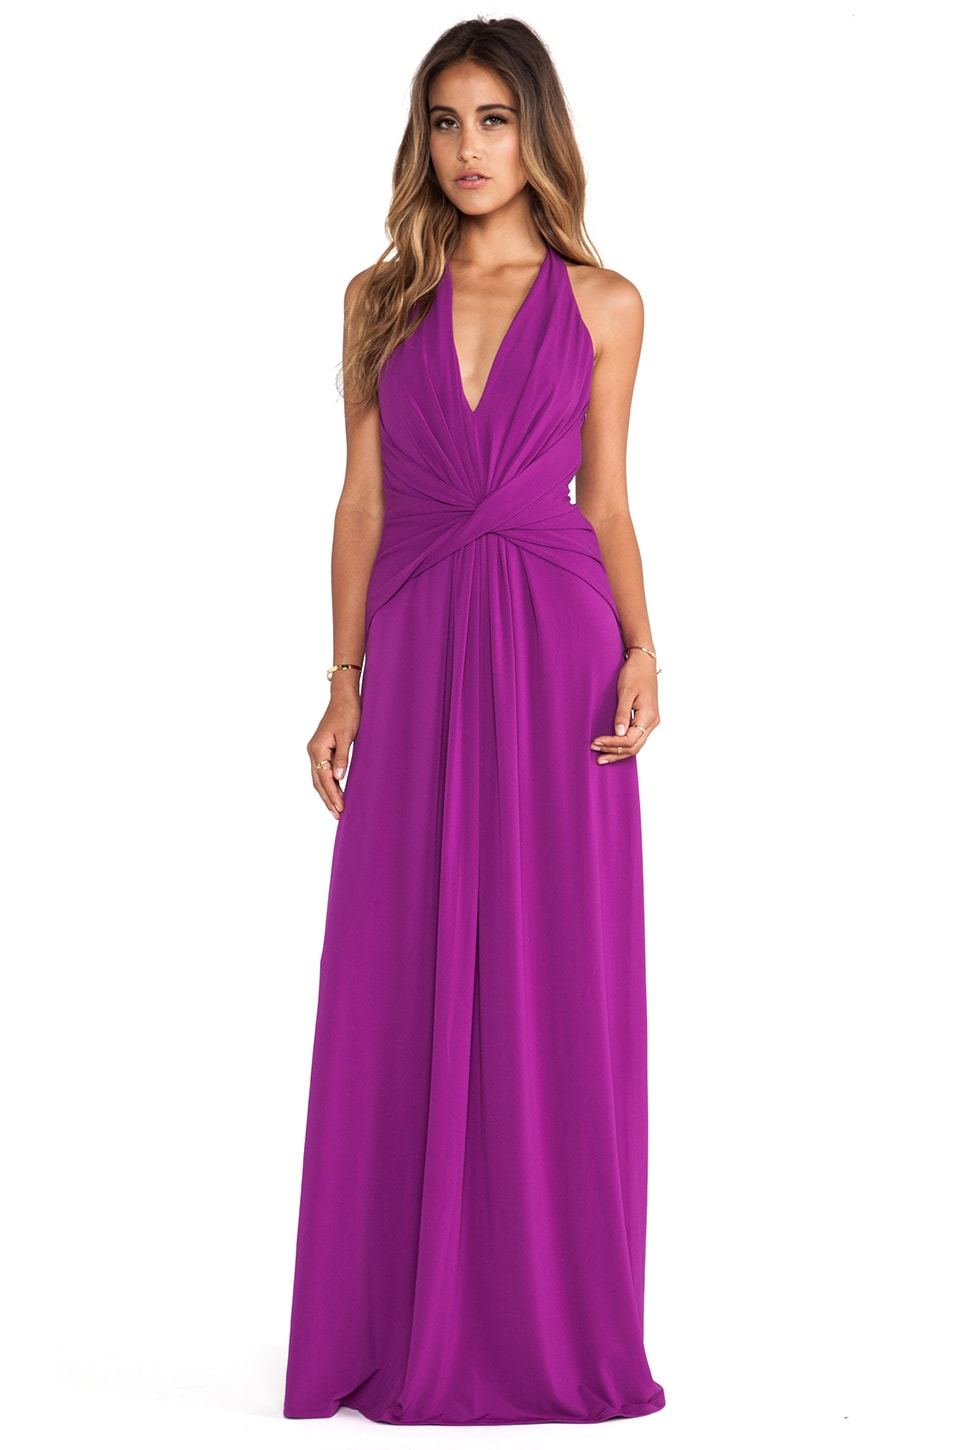 Halston Heritage Halter Gown in Electric Purple